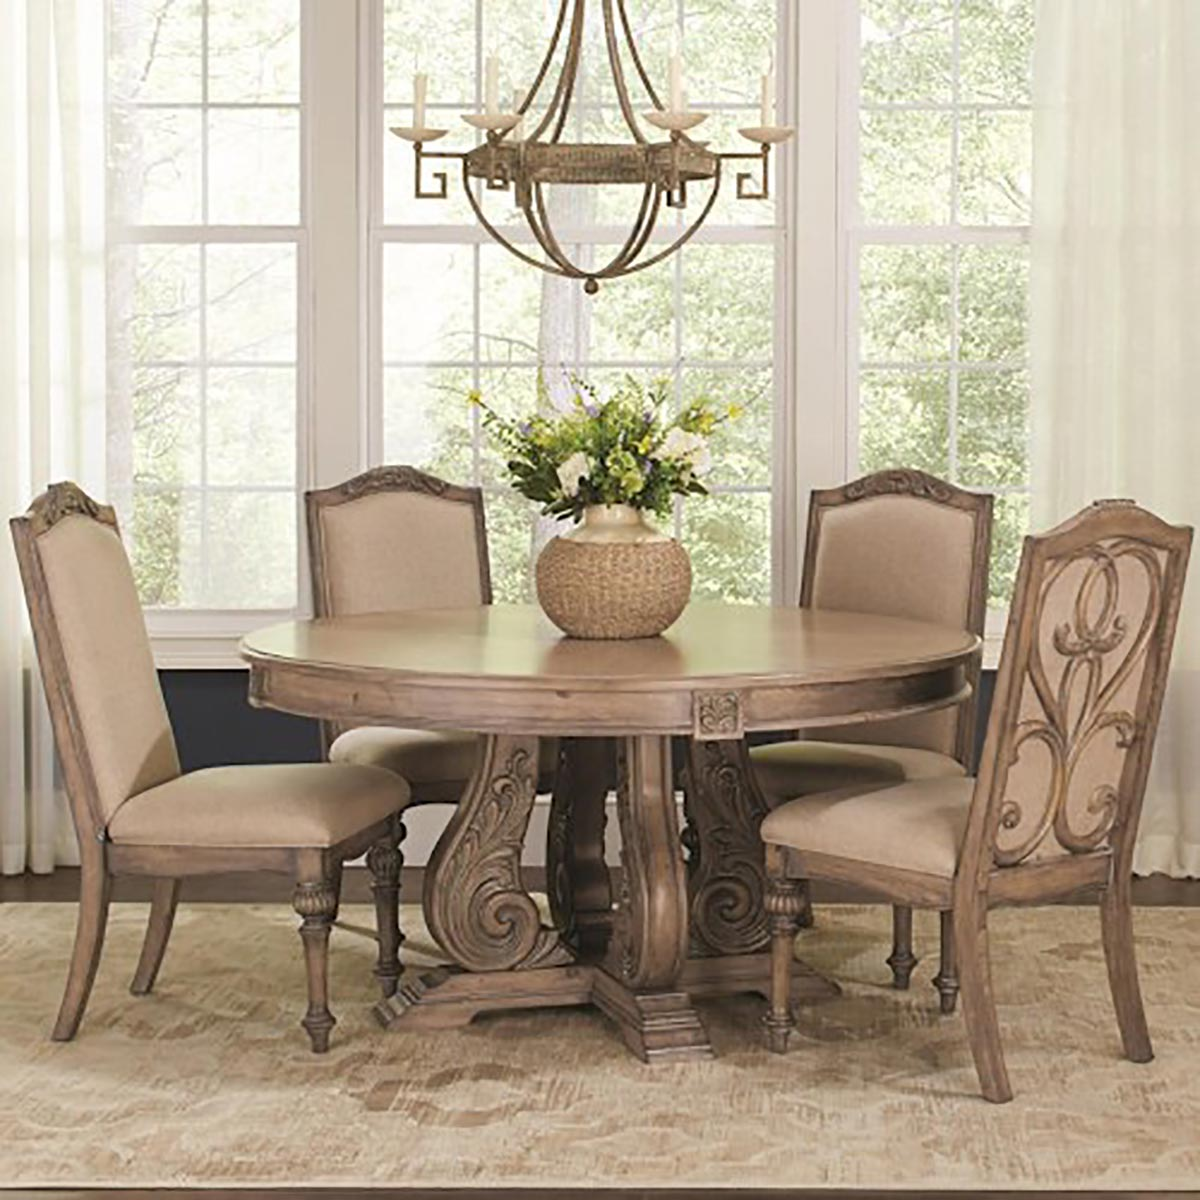 table hutch rooms corner furniture room cupboa oak sets gold ideas display cupboard storage antique and white designs cabinets mahogany set value chandelier tables dining styles